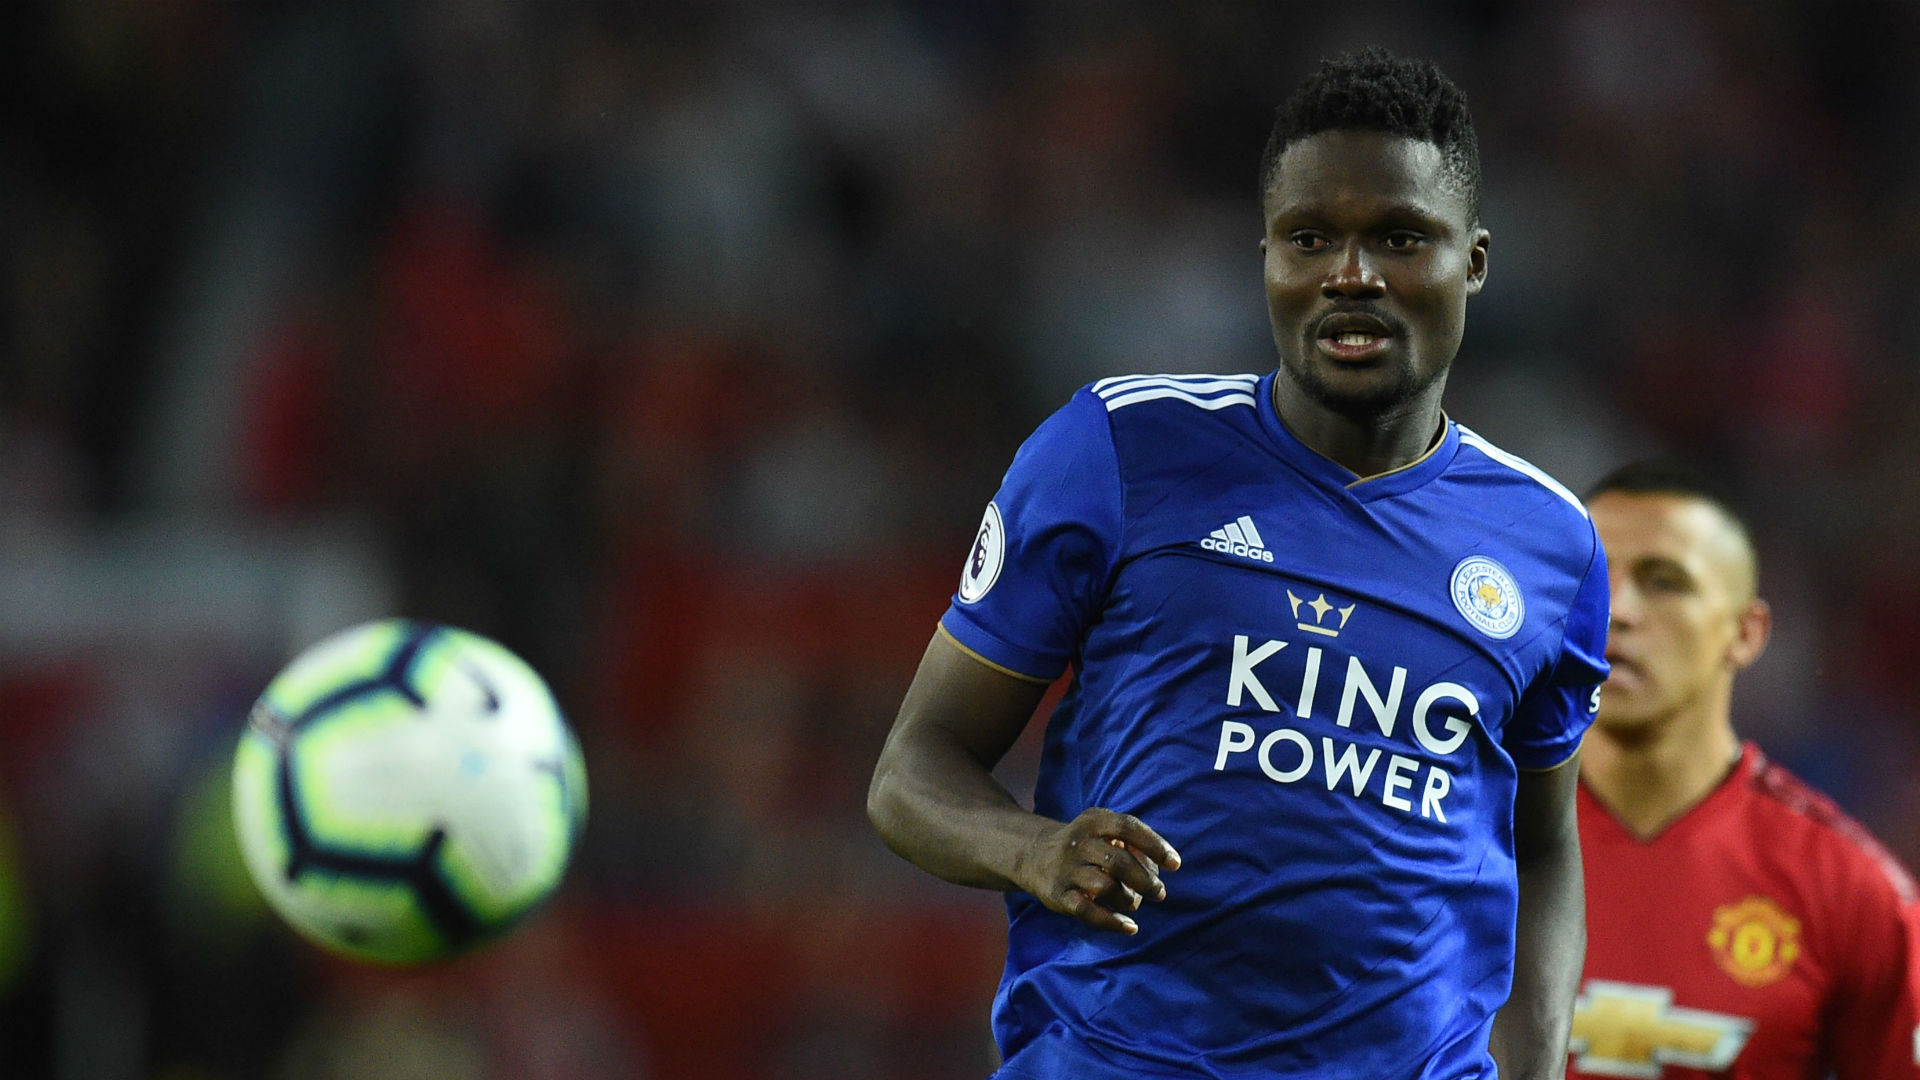 Leicester City : Ndidi writes emotional tribute as players pay respects to Vichai